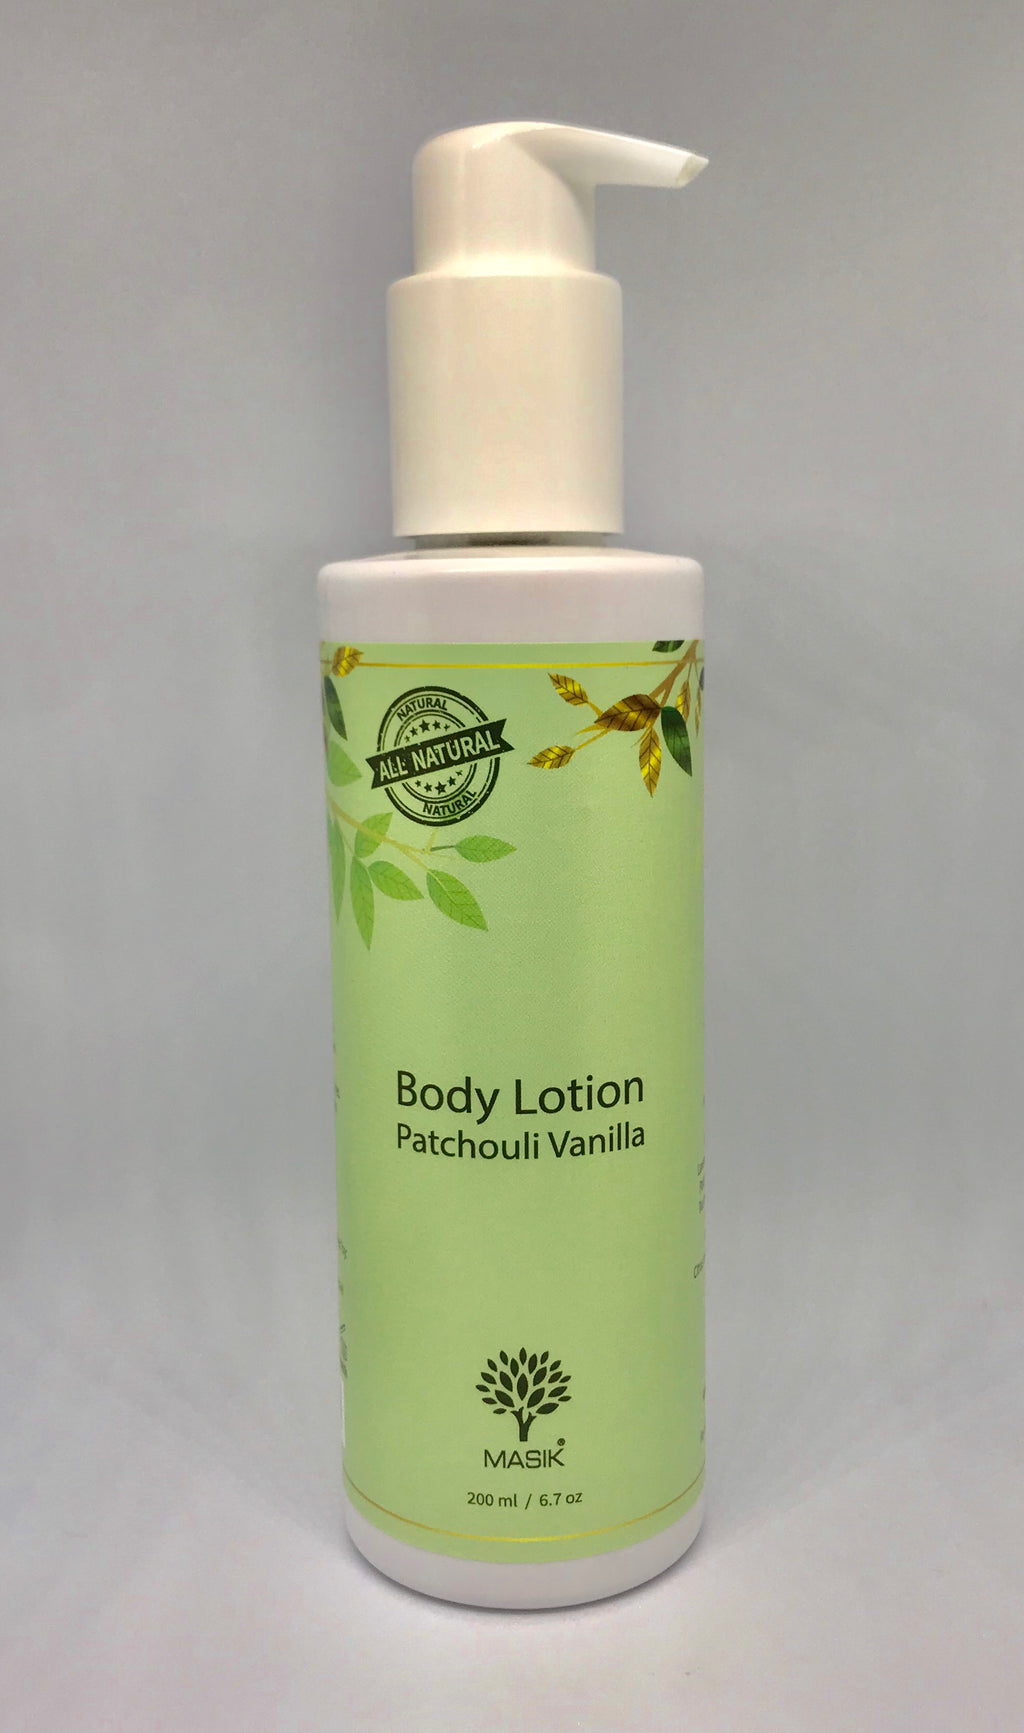 Masik Body lotion - Patchouli Vanilla 100% Natural -olive oil - essential oils